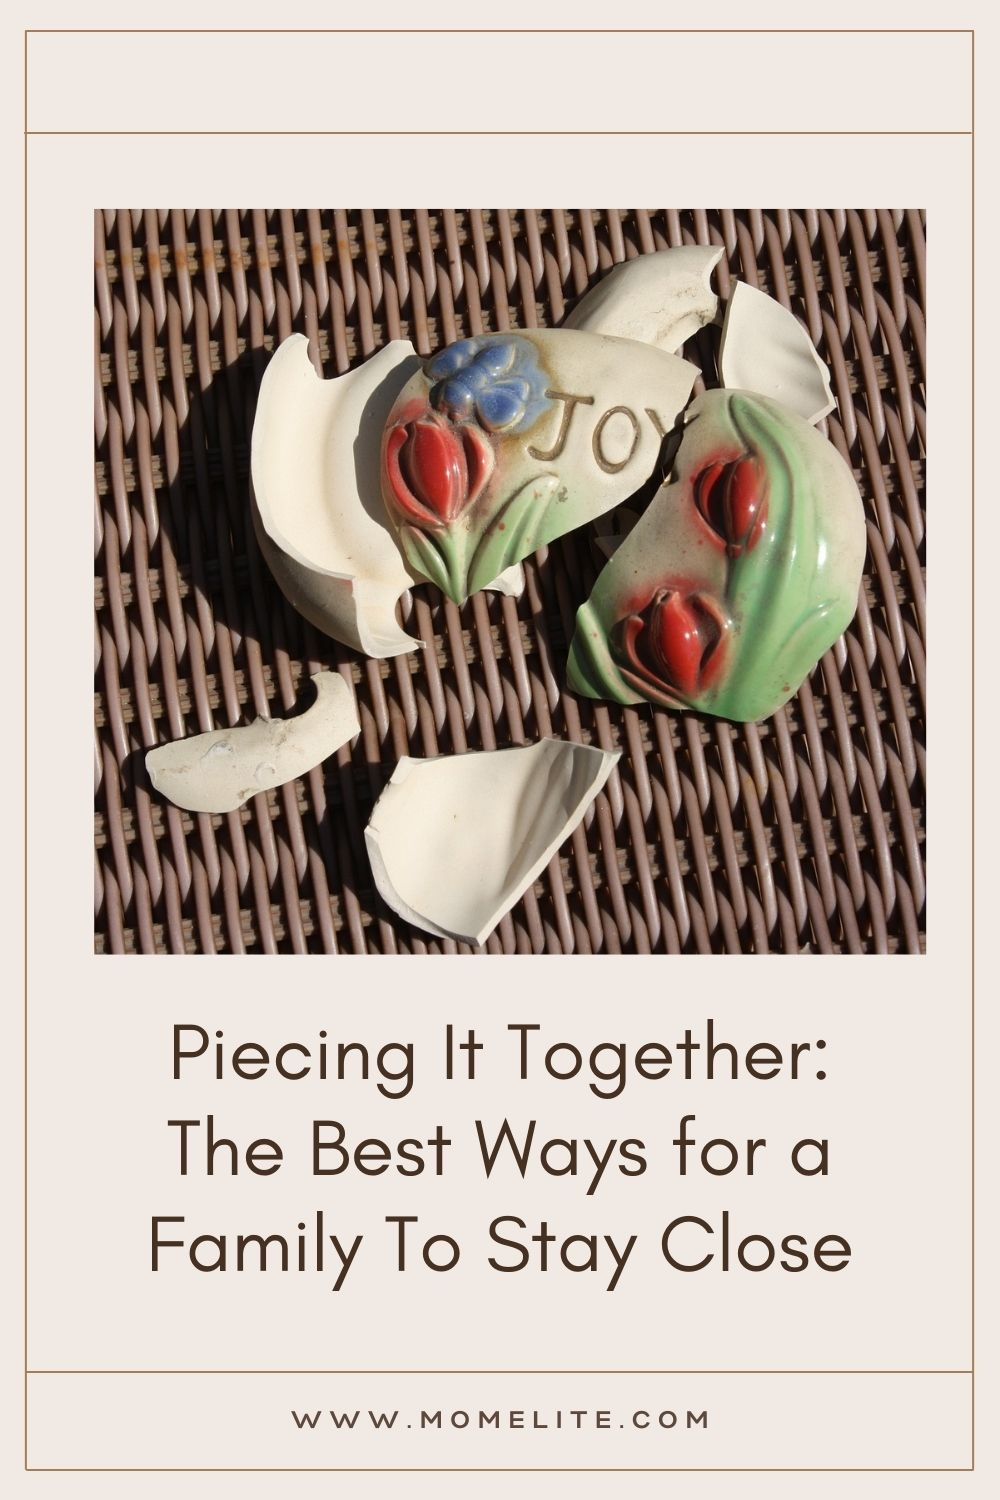 Piecing It Together: The Best Ways for a Family To Stay Close